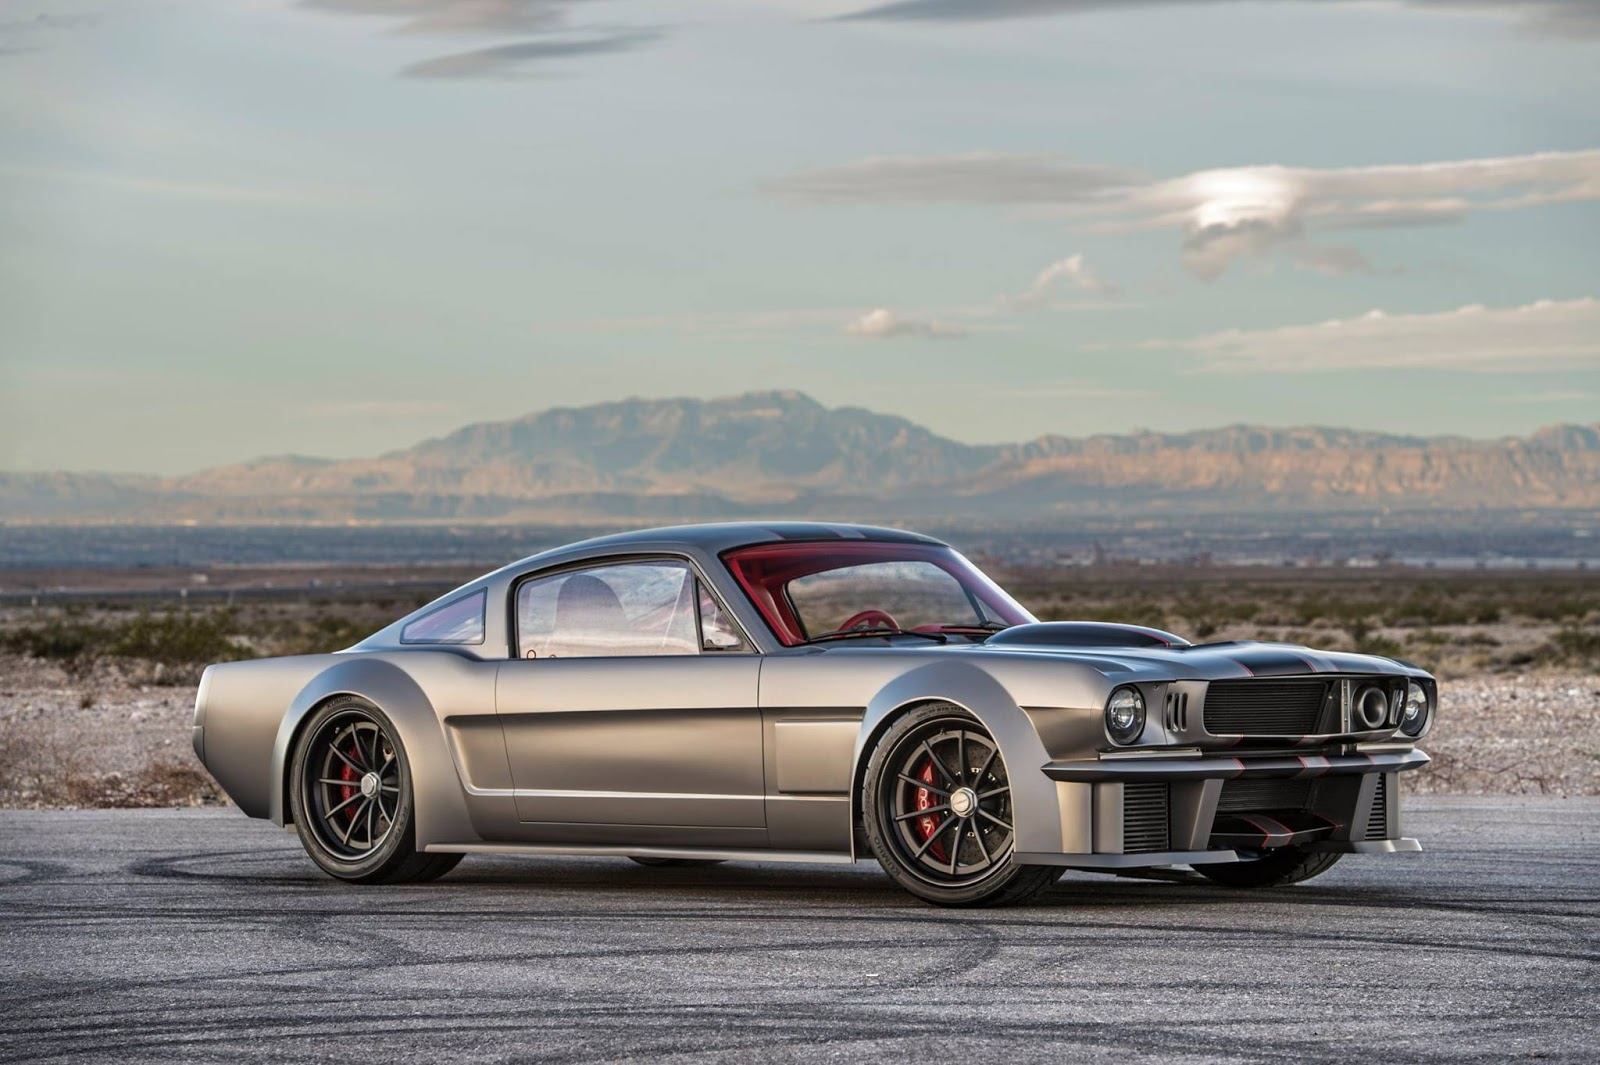 Twin-Turbo Mustang by Timeless Kustoms (4)